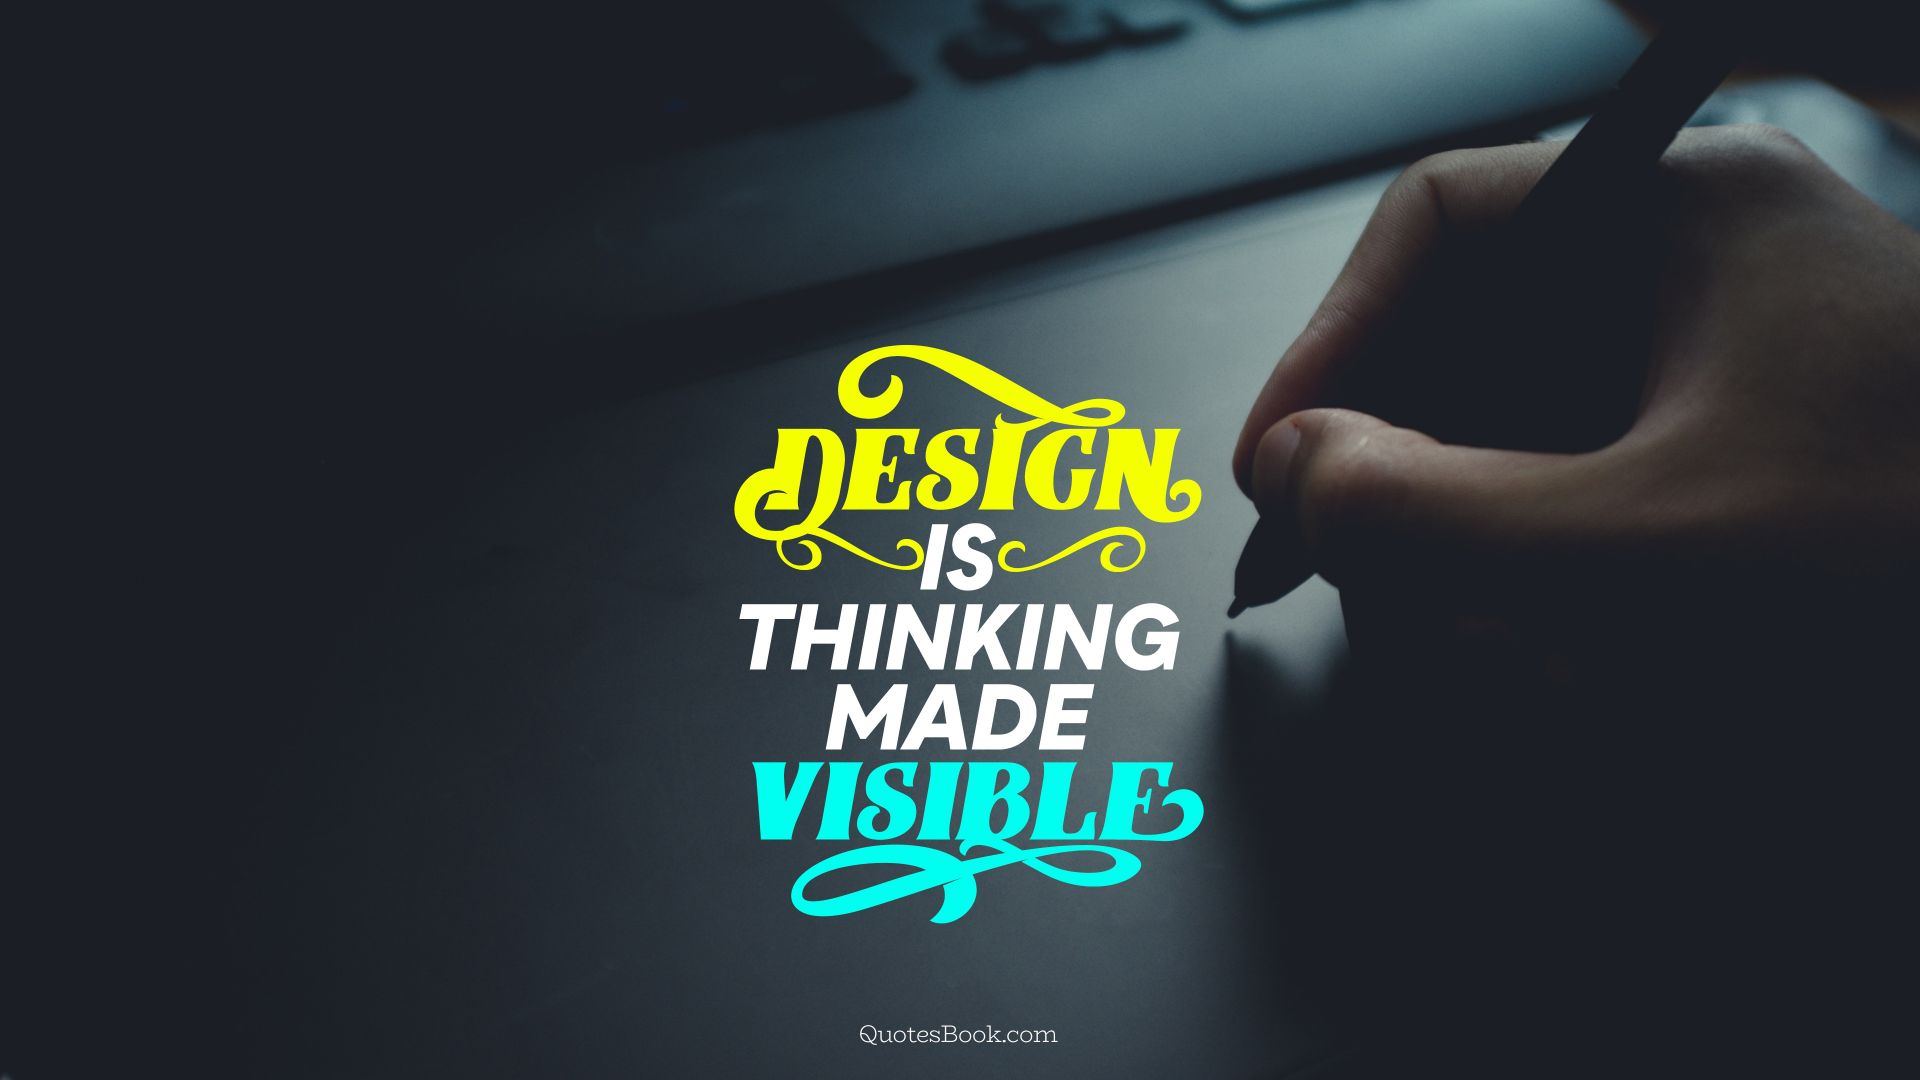 Design is thinking made visible